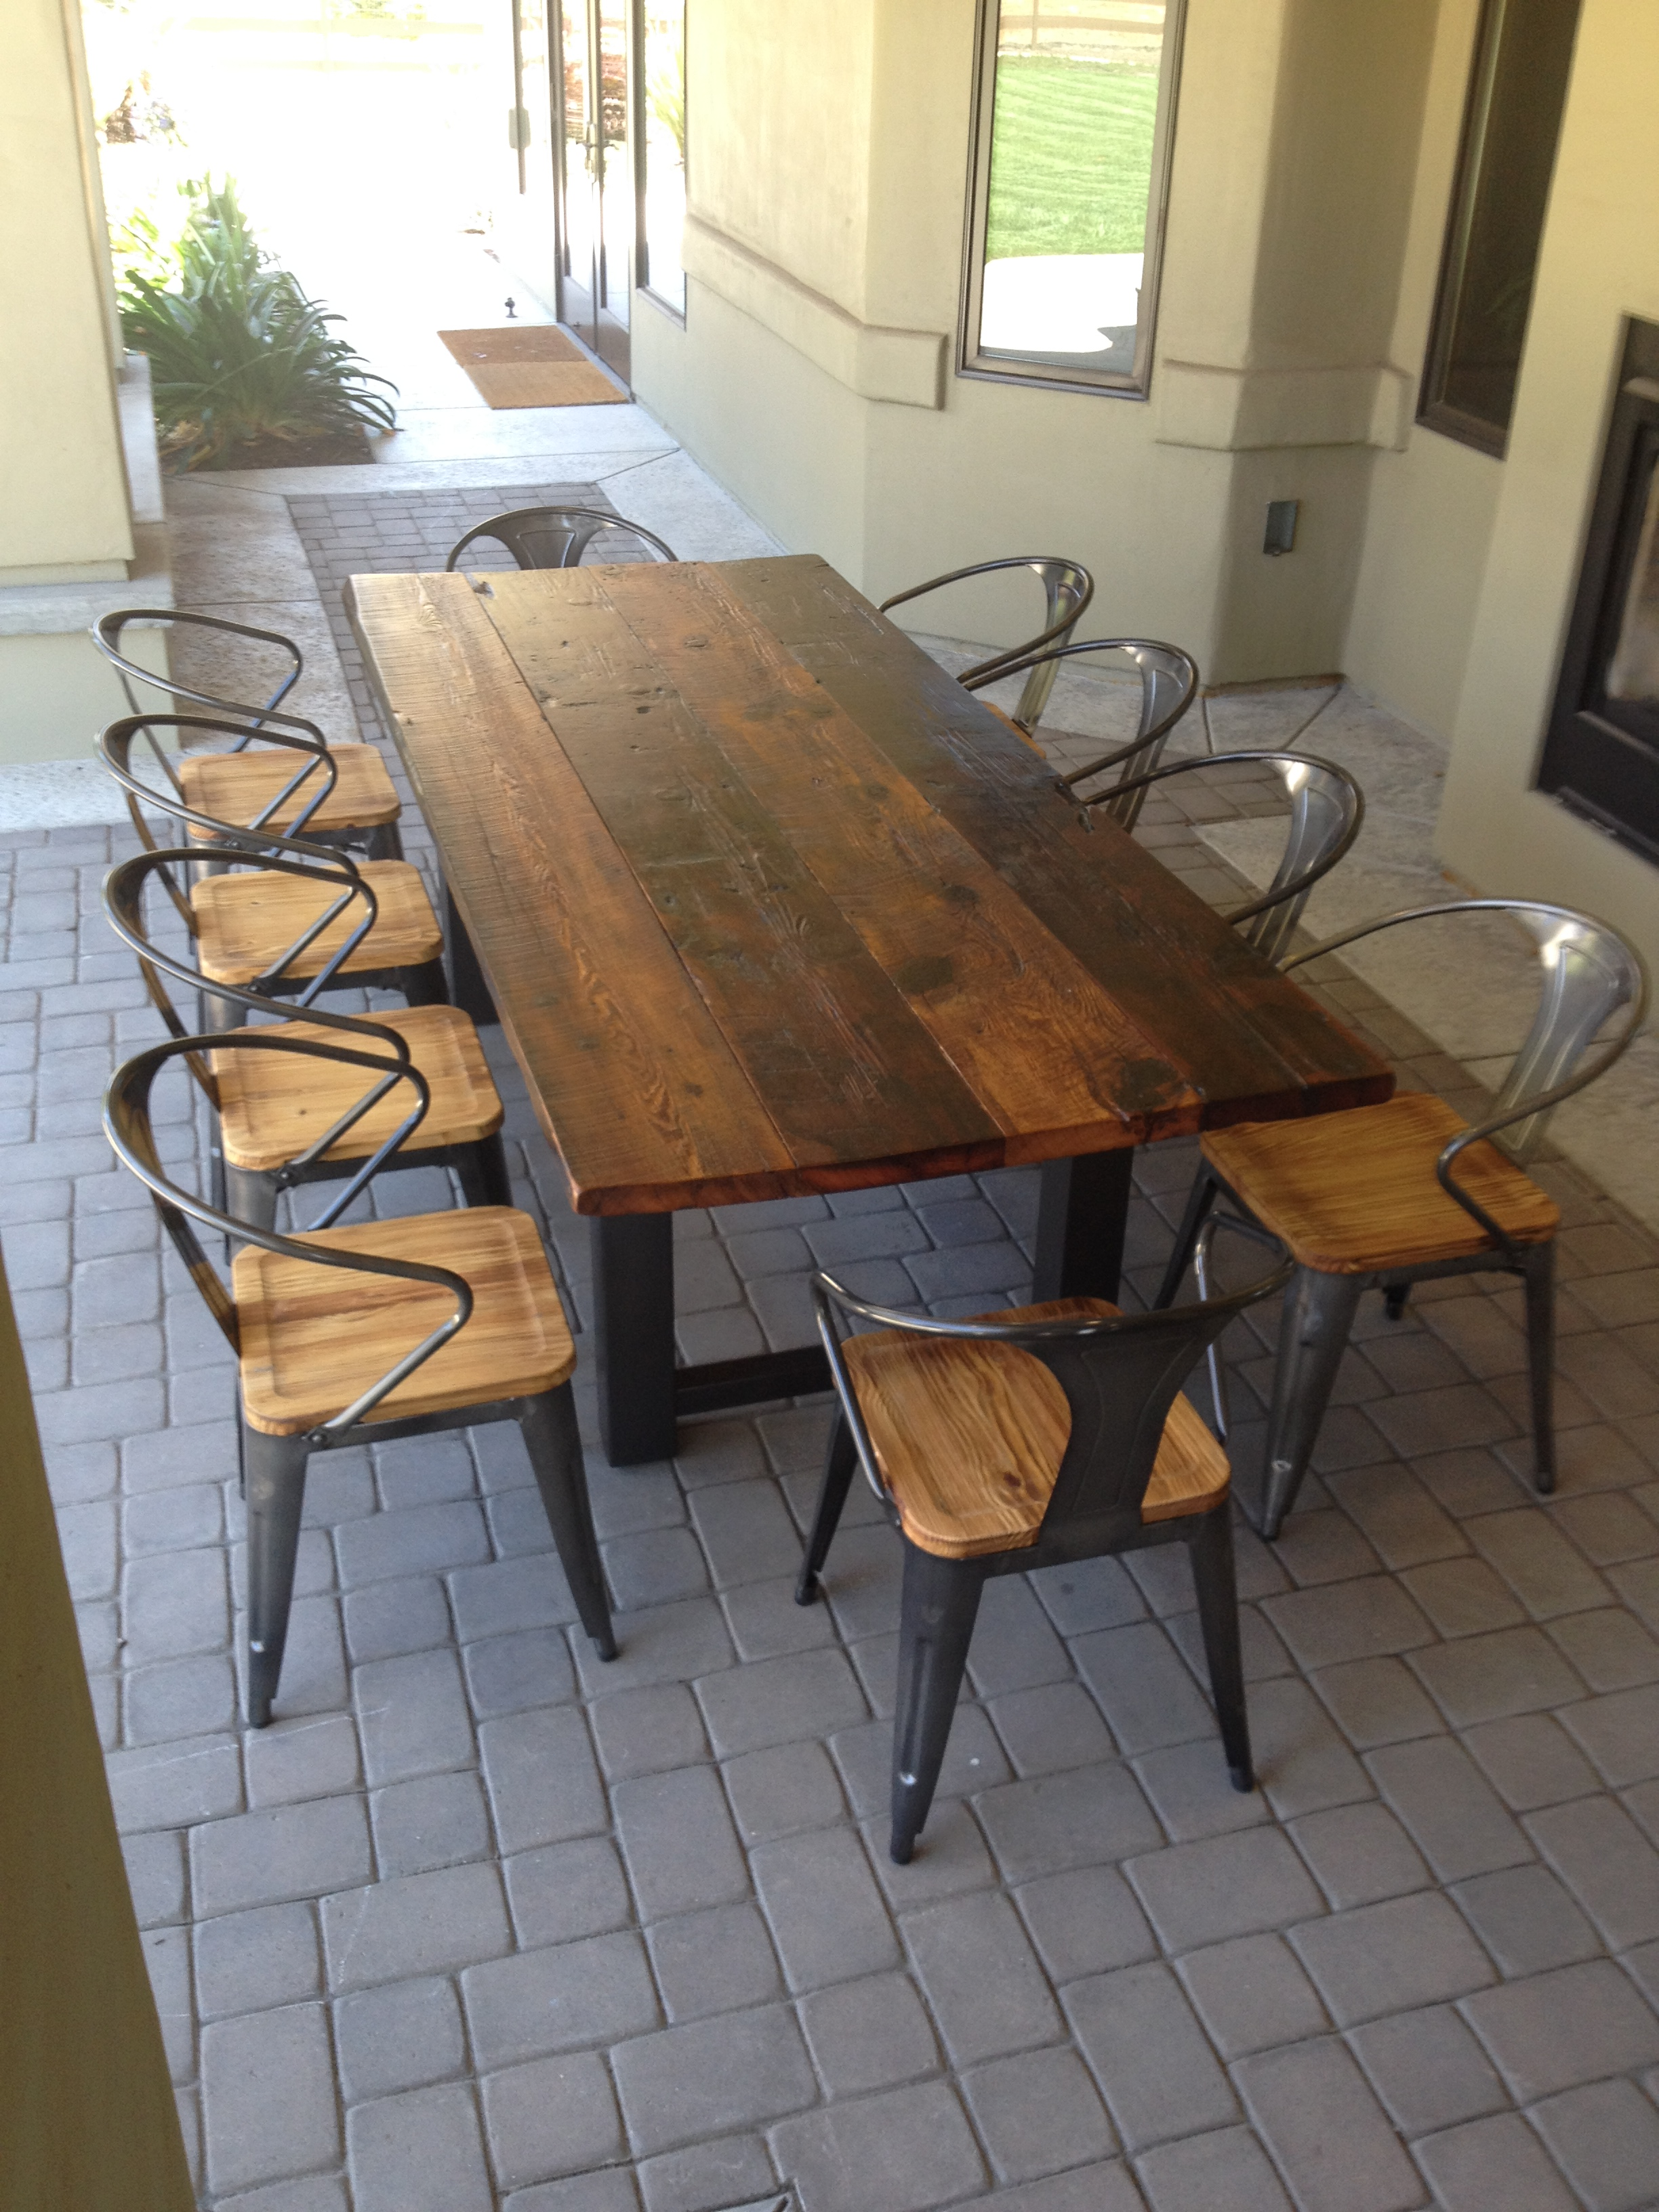 Diy 8 Person Dining Table Reclaimed Wood Outdoor Furniture Rustic Outdoor Tables